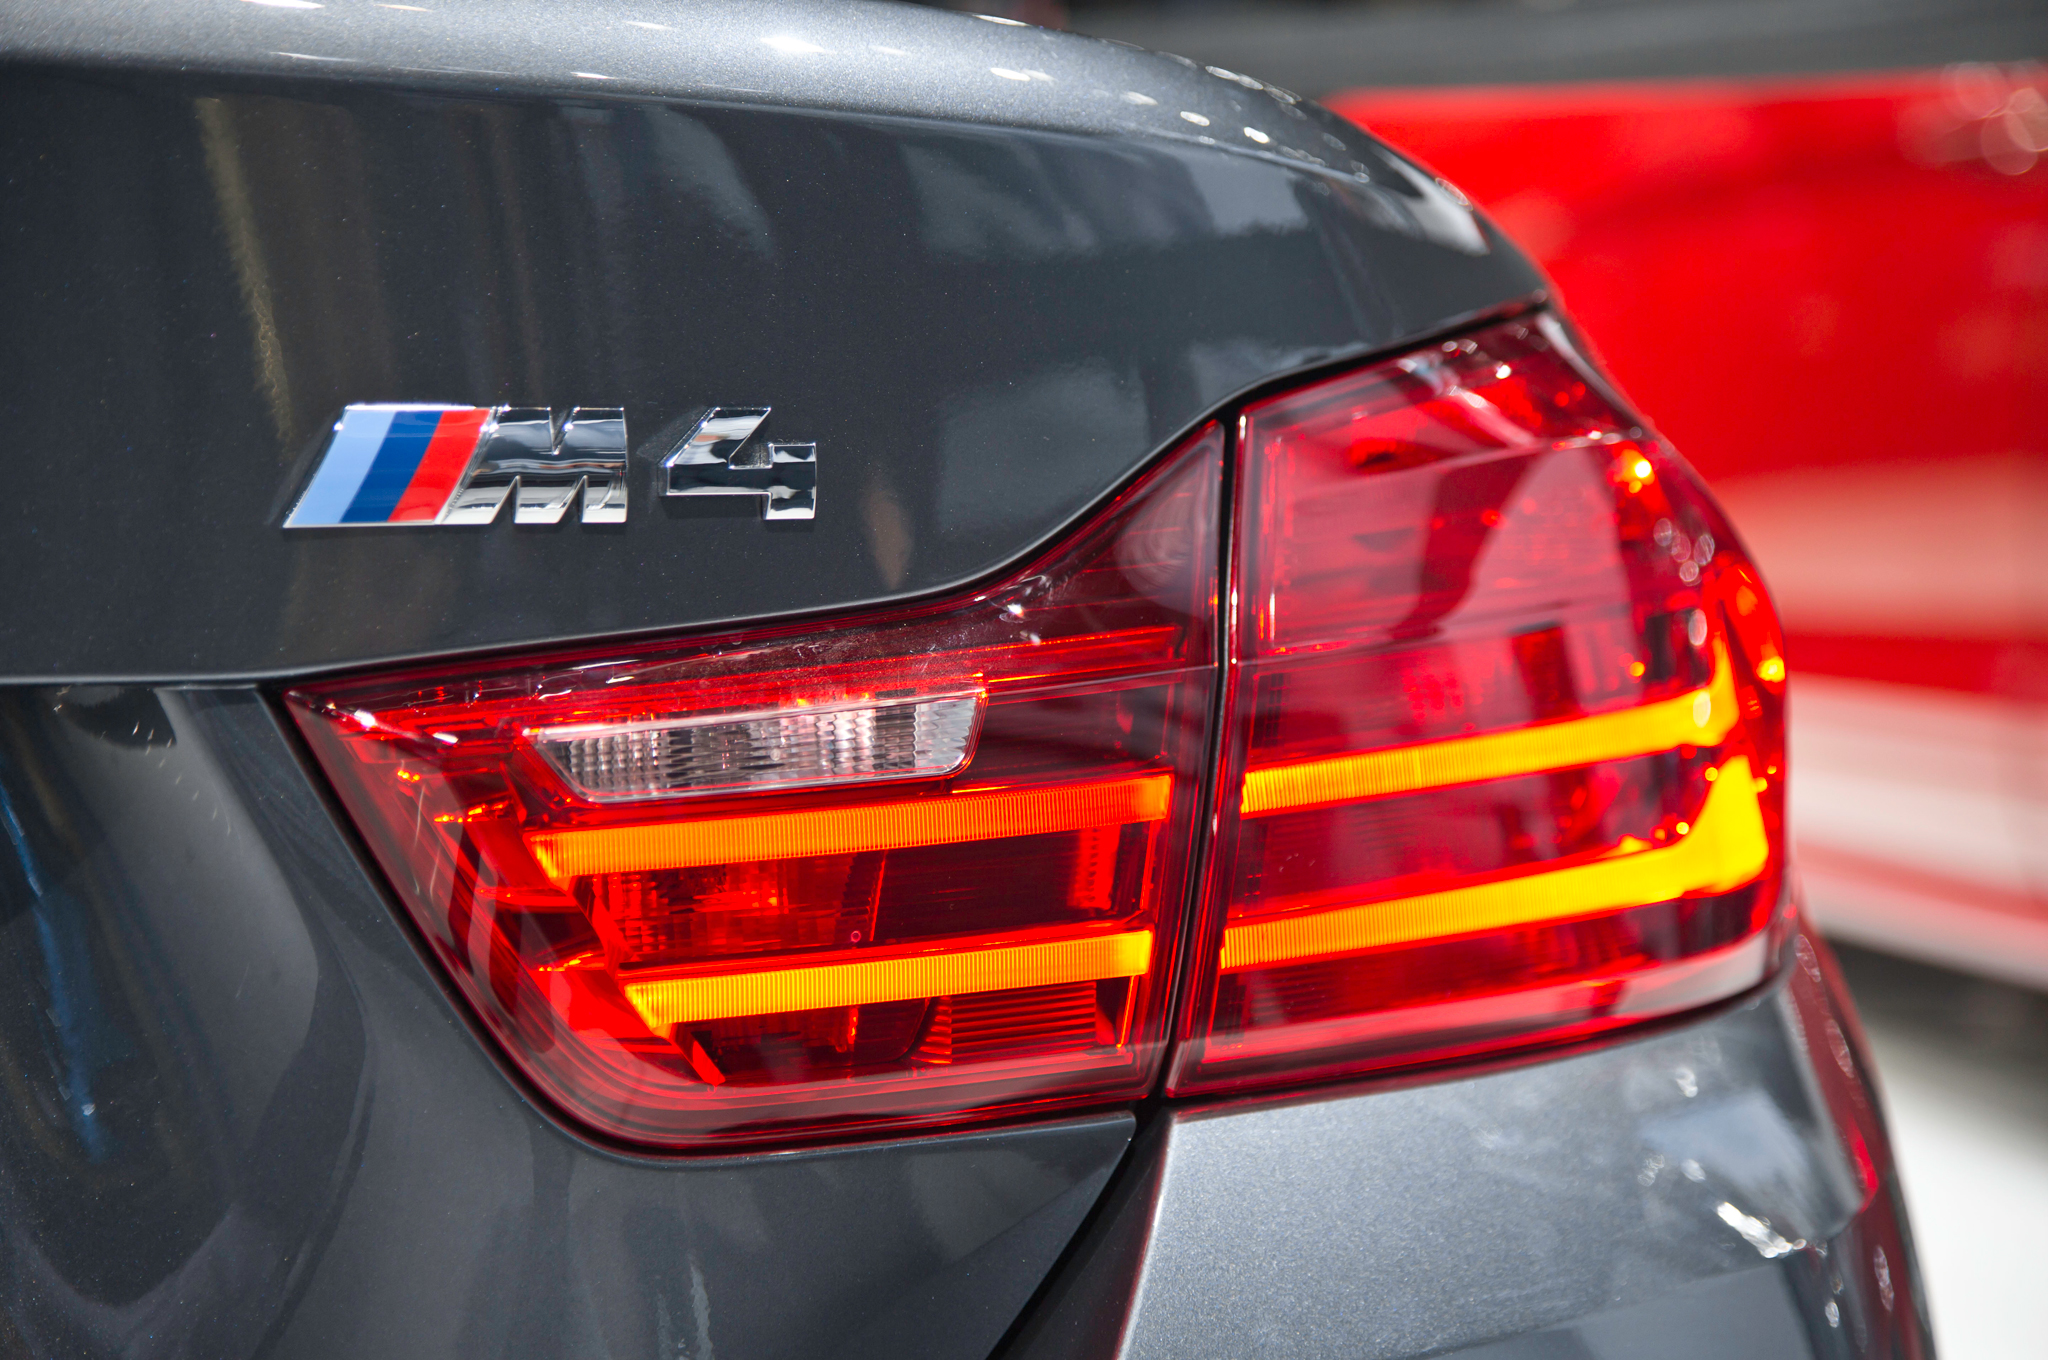 2015 Bmw M4 Convertible Rear Taillight (Photo 14 of 50)